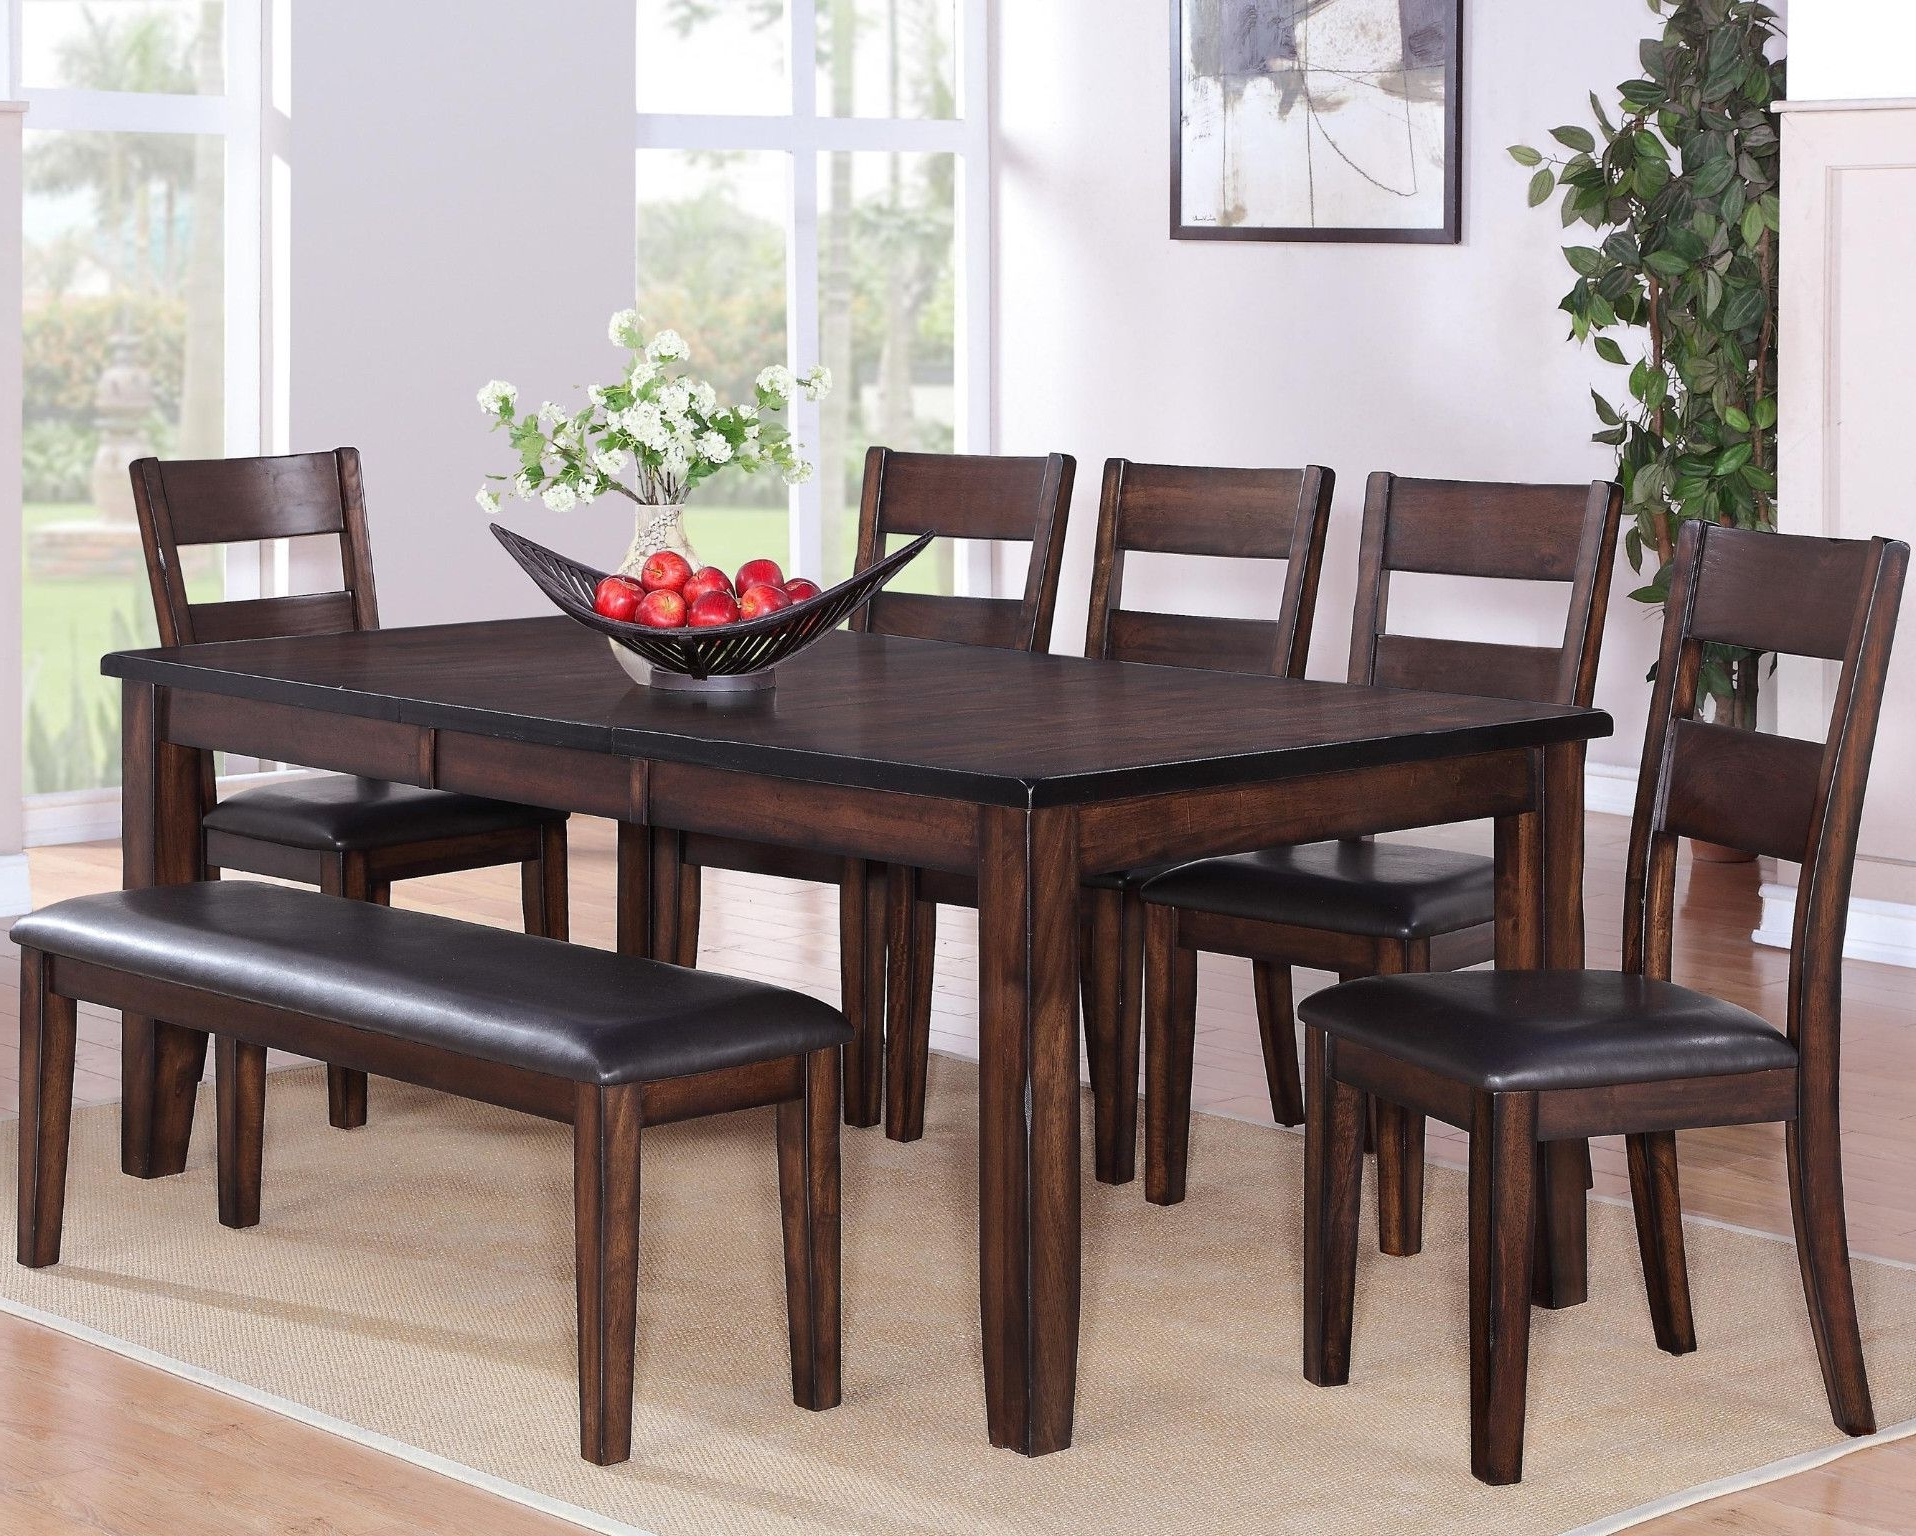 Valencia 5 Piece 60 Inch Round Dining Sets In Current Maldives 5 Piece Dinette Table And 4 Chairs $699.00 Table $ (View 17 of 25)